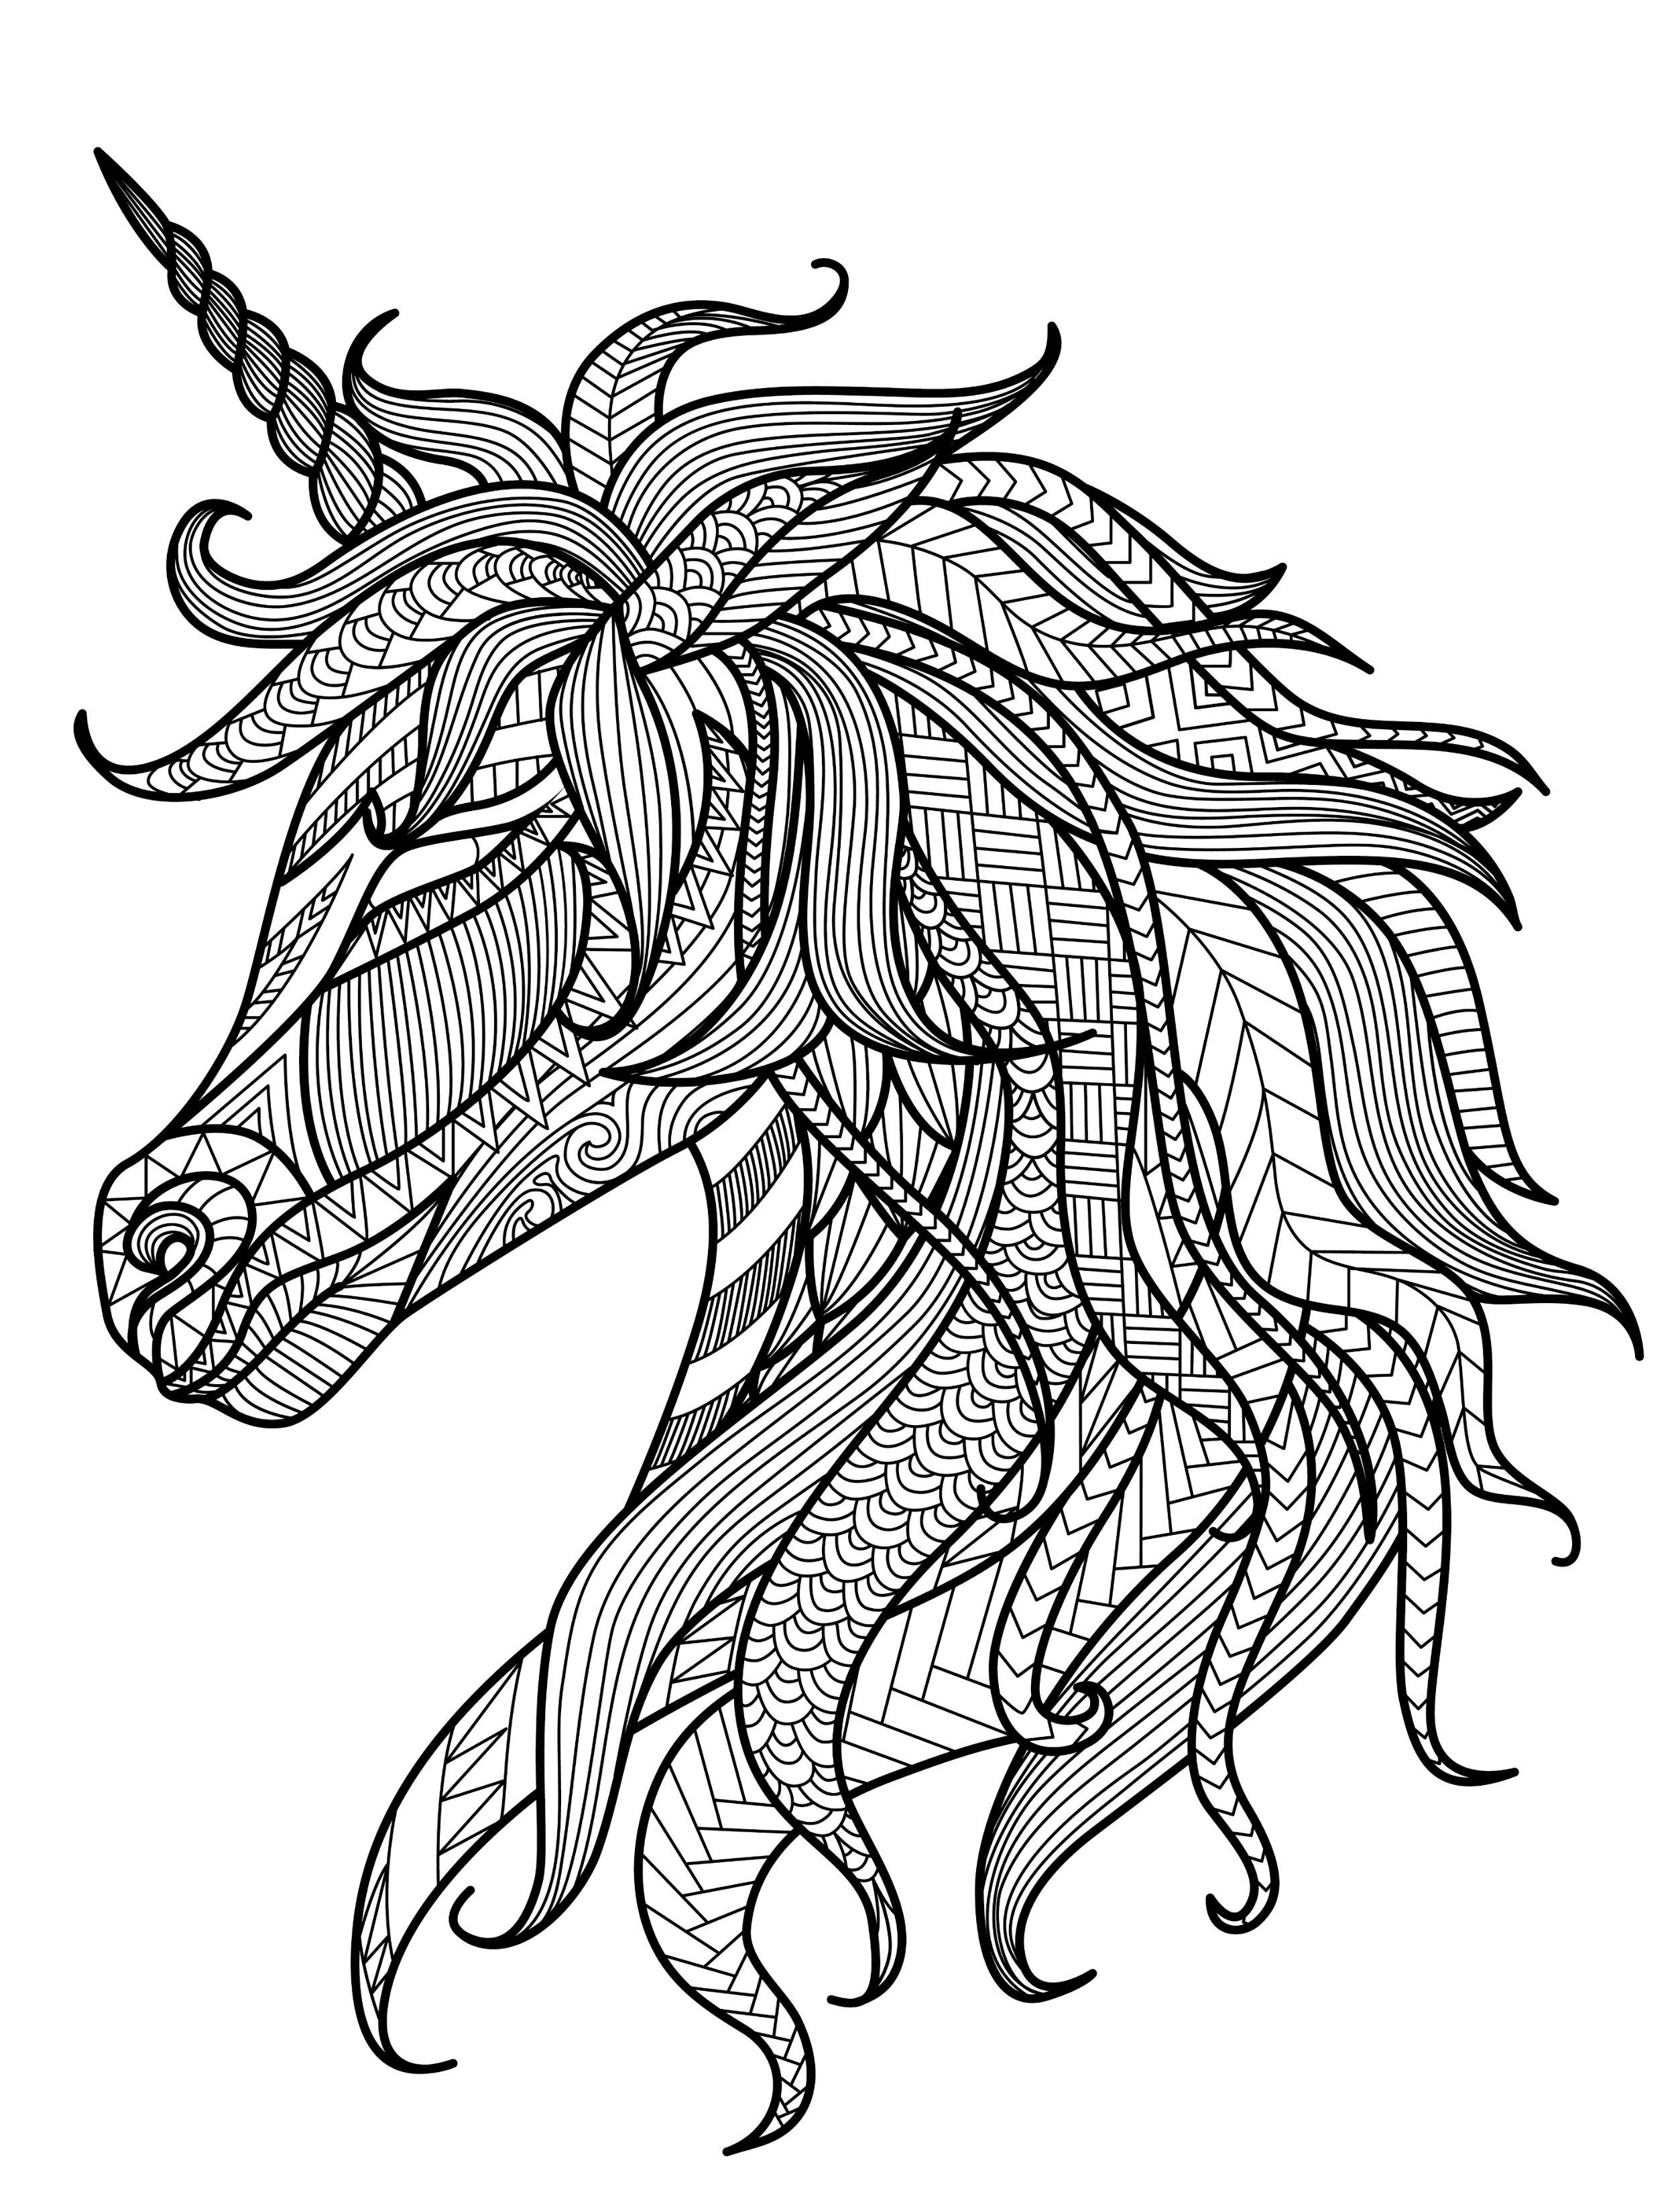 coloring sheet unicorn coloring pictures to print unicorn on its two back legs unicorns adult coloring pages unicorn print sheet to pictures coloring coloring